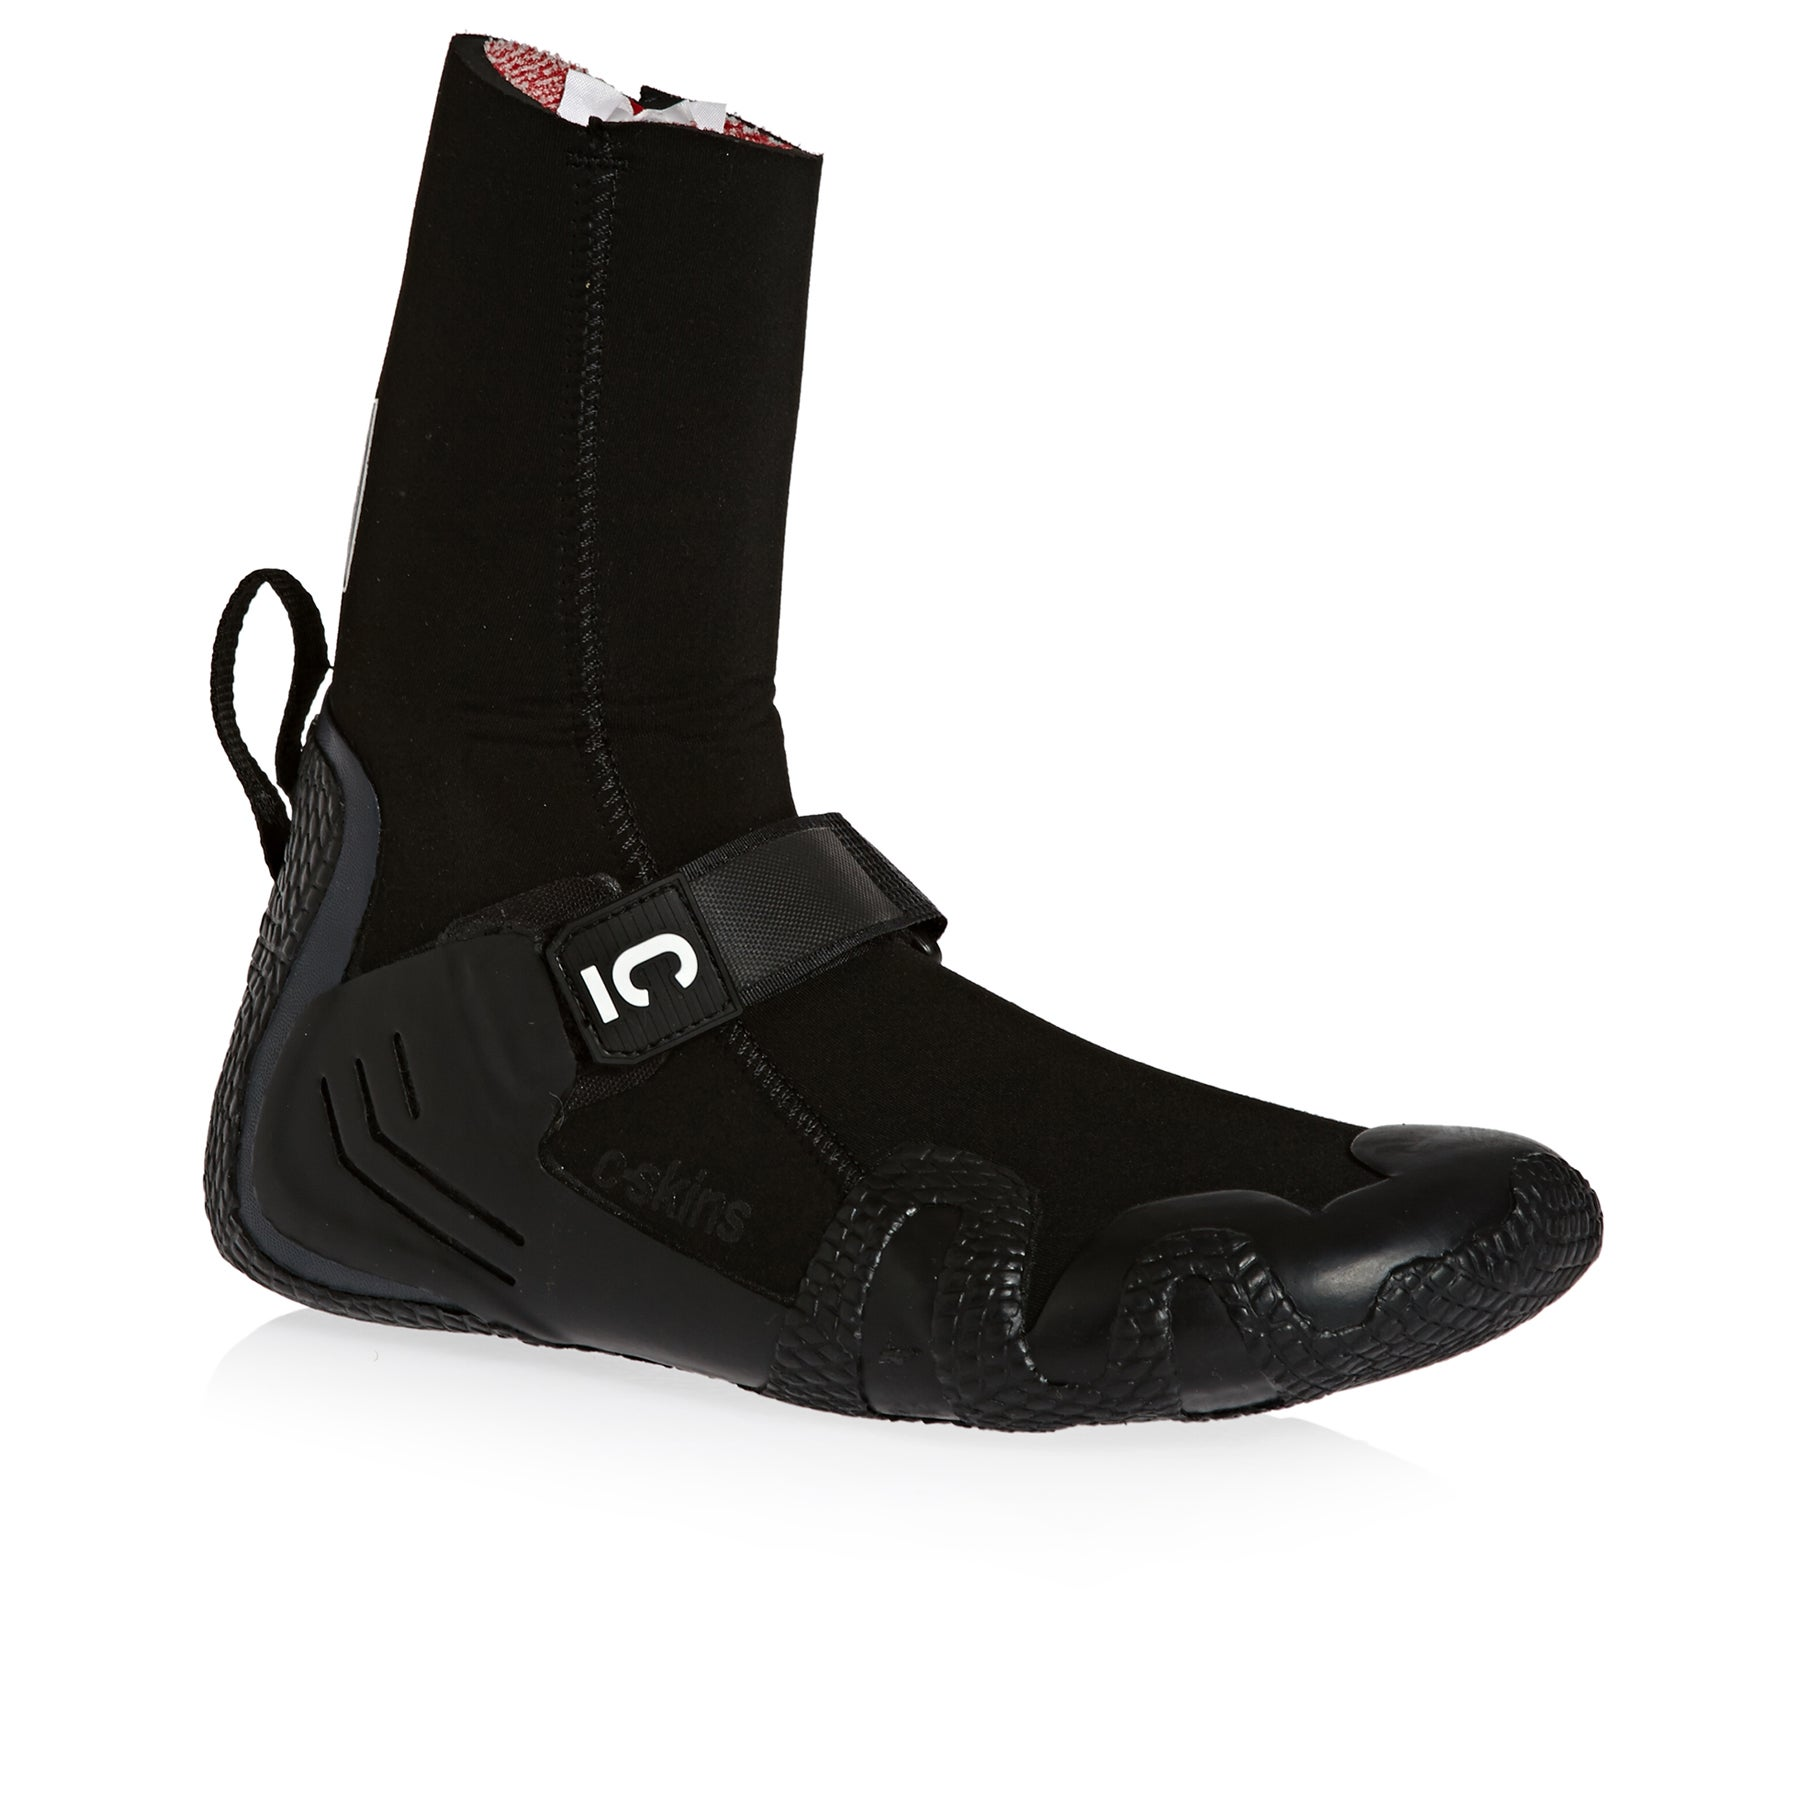 C-Skins Wired 7mm Adult Round Toe Wetsuit Boots